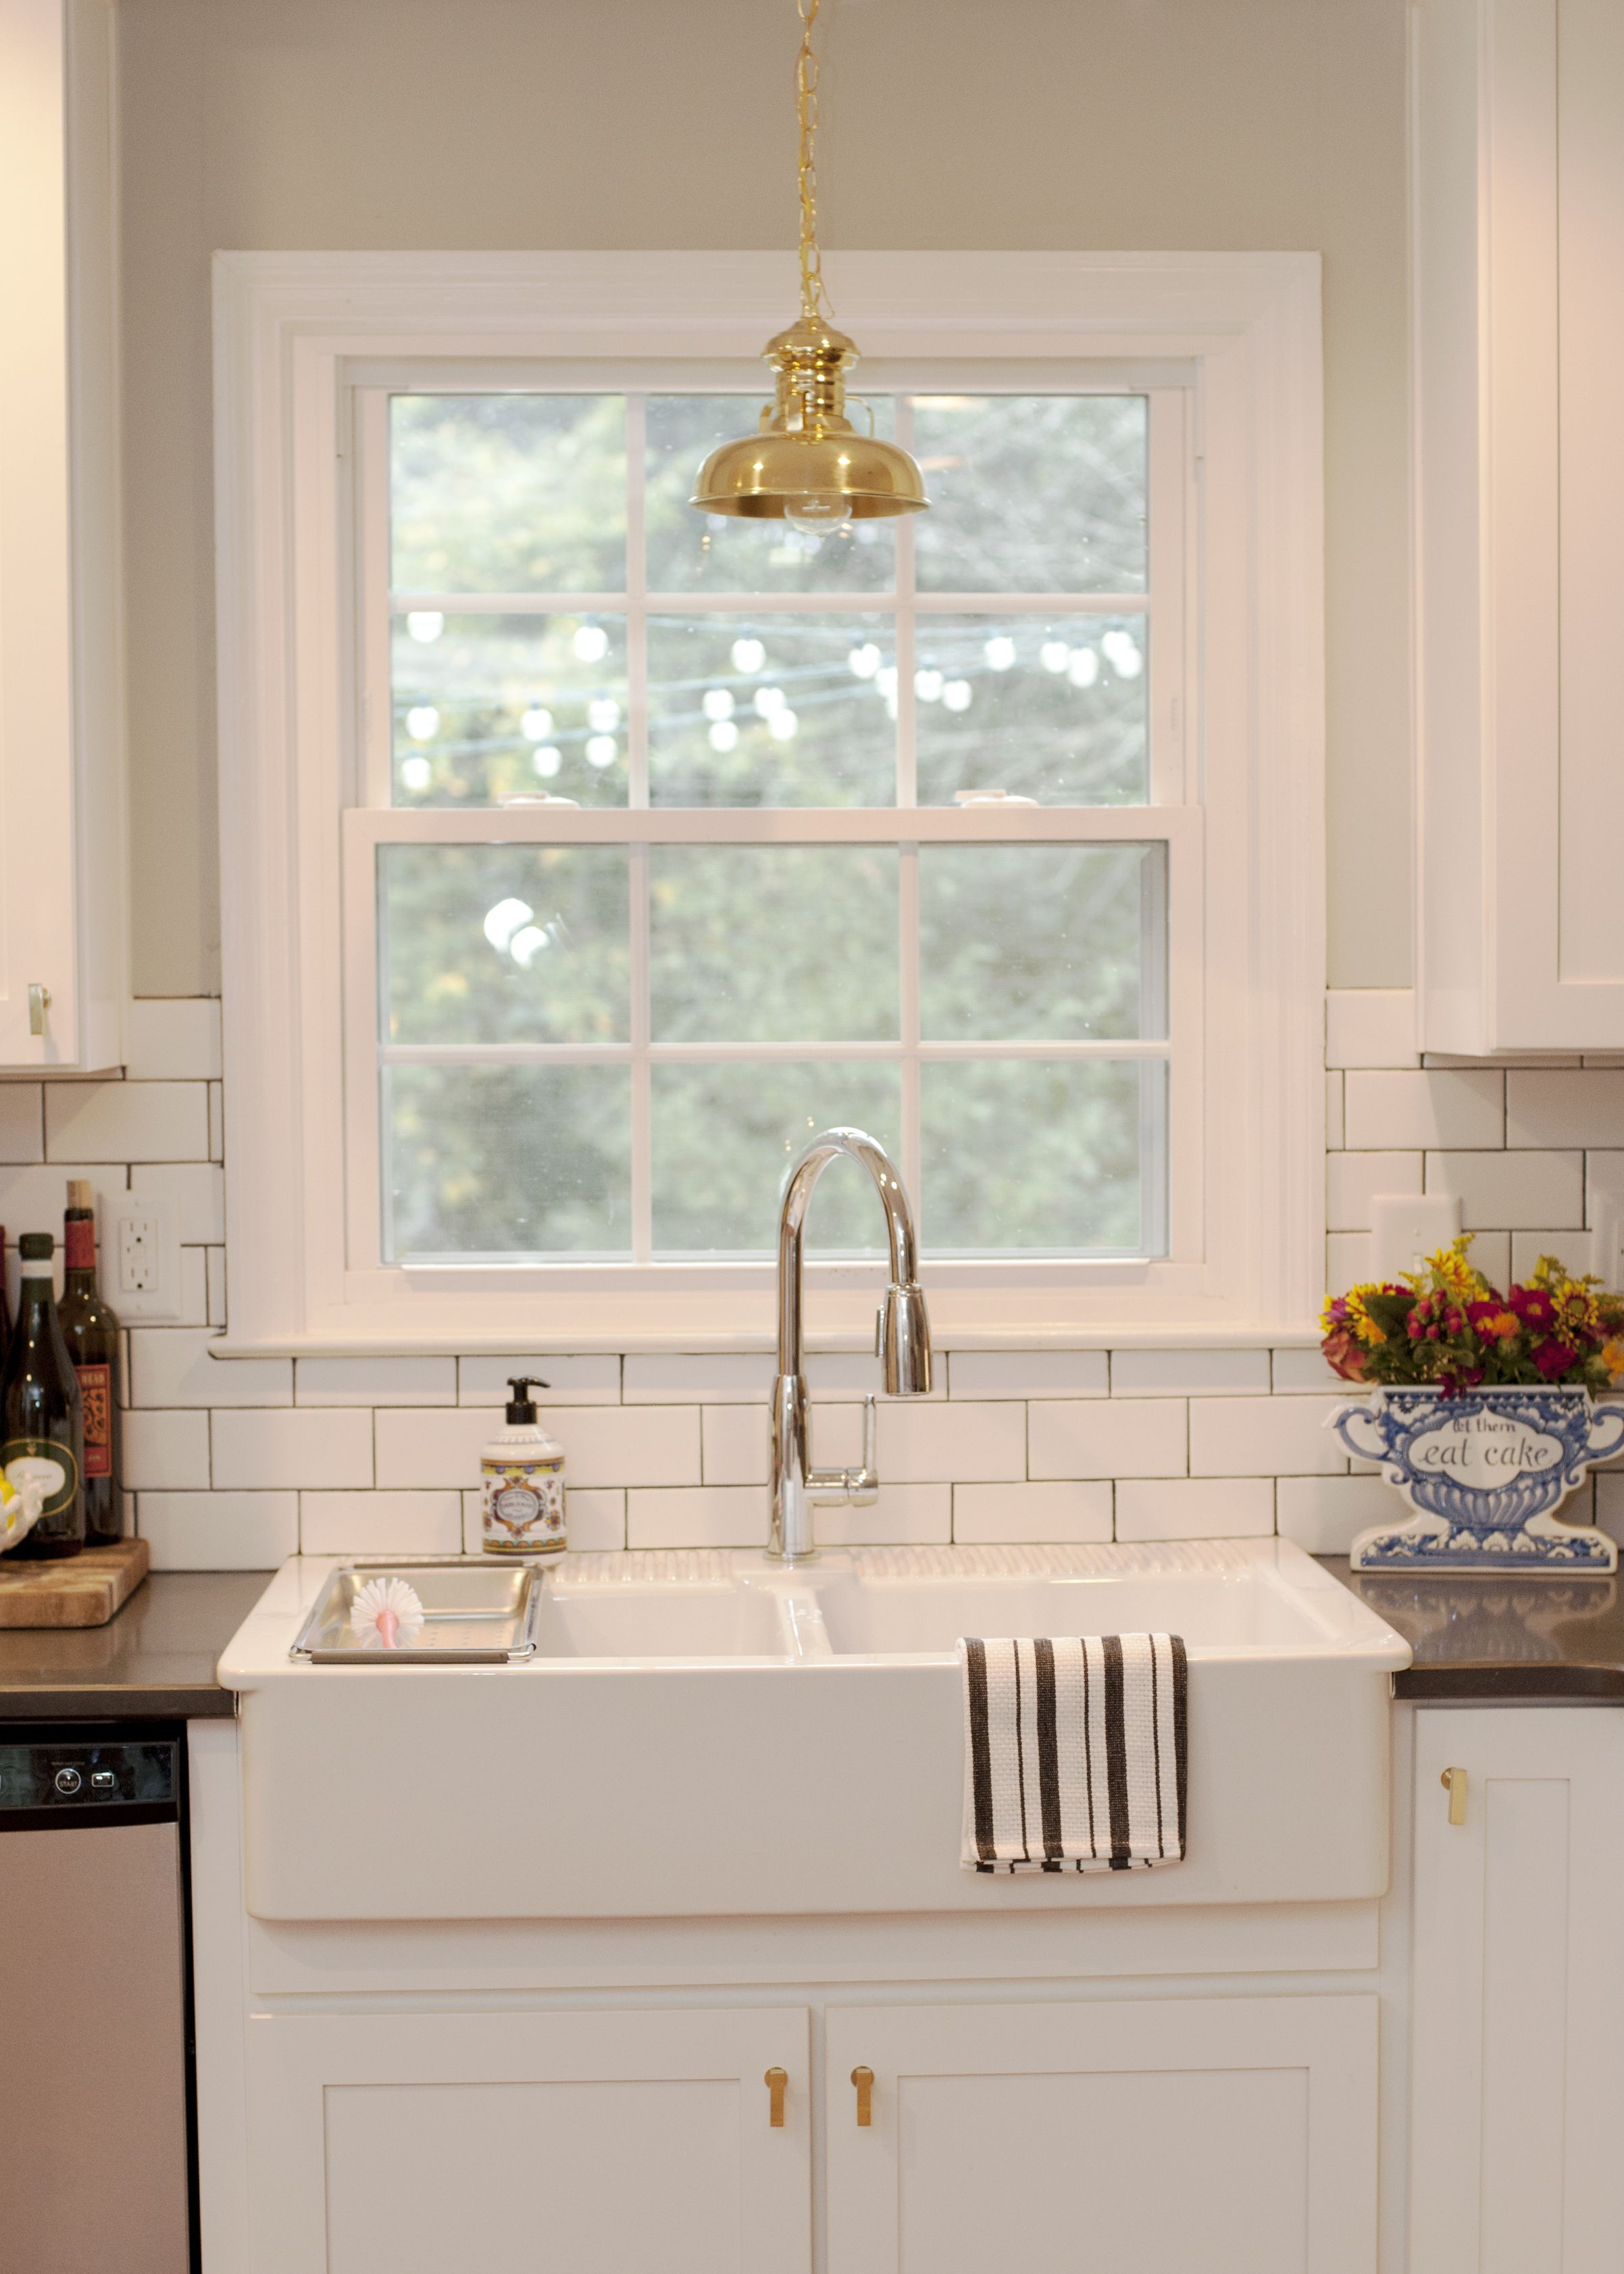 Jessie epley short home tour kitchen subway tile dark grout